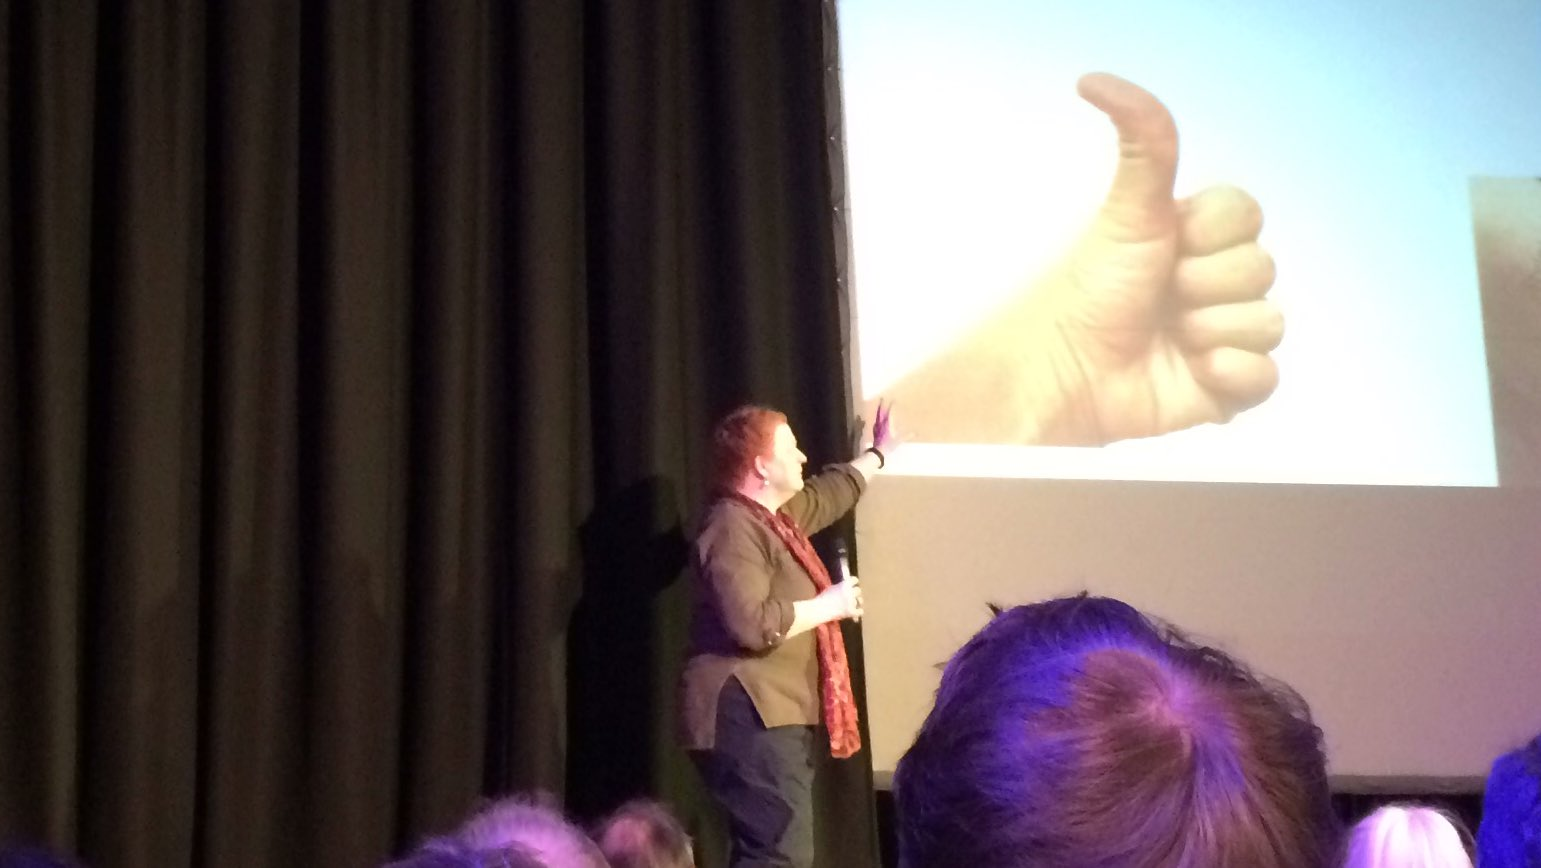 It's thumbs up for another cracking talk by Sue Black #PKN_DND https://t.co/Brxy3MAxMa